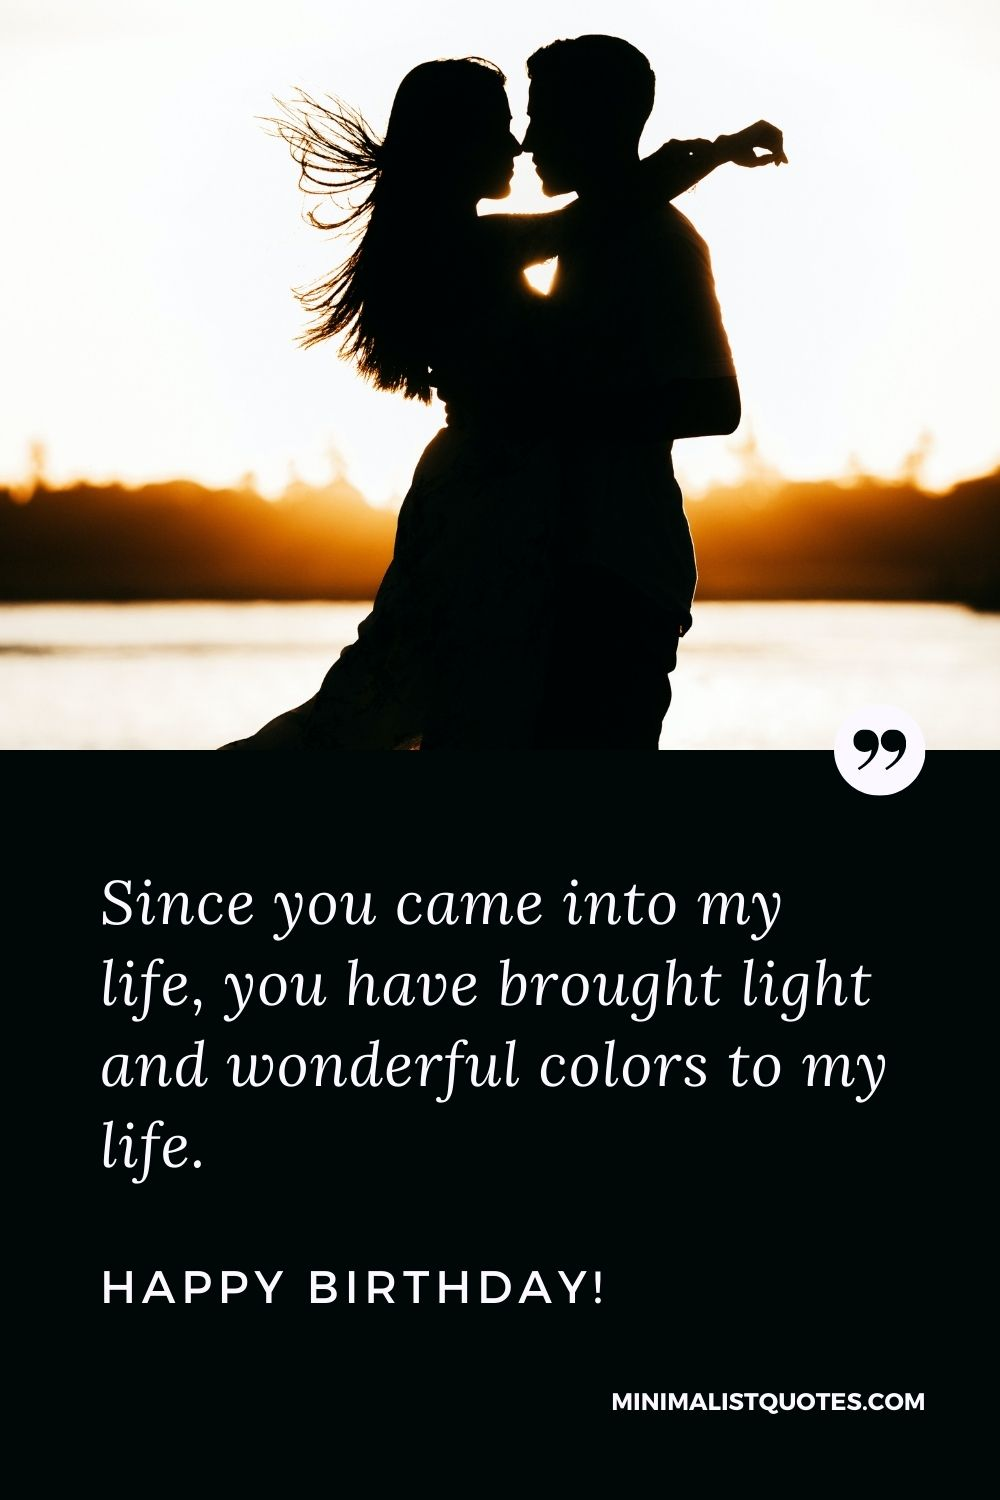 Emotional birthday quote for lover: Since you came into my life, you have brought light and wonderful colors to my life. Happy Birthday!